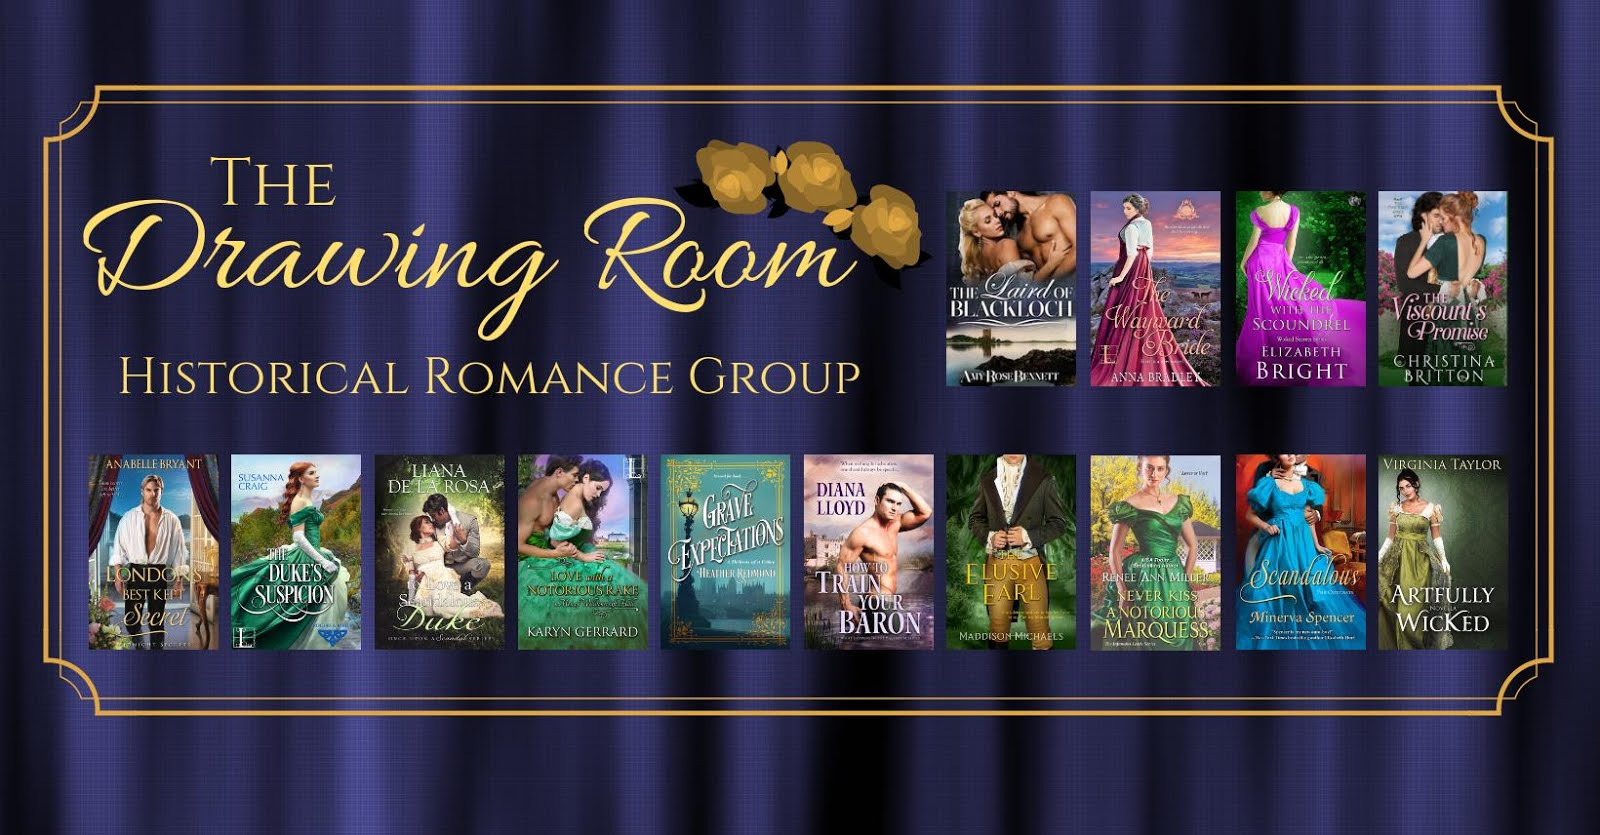 THE DRAWING ROOM FACEBOOK GROUP <br>(Historical Romance)